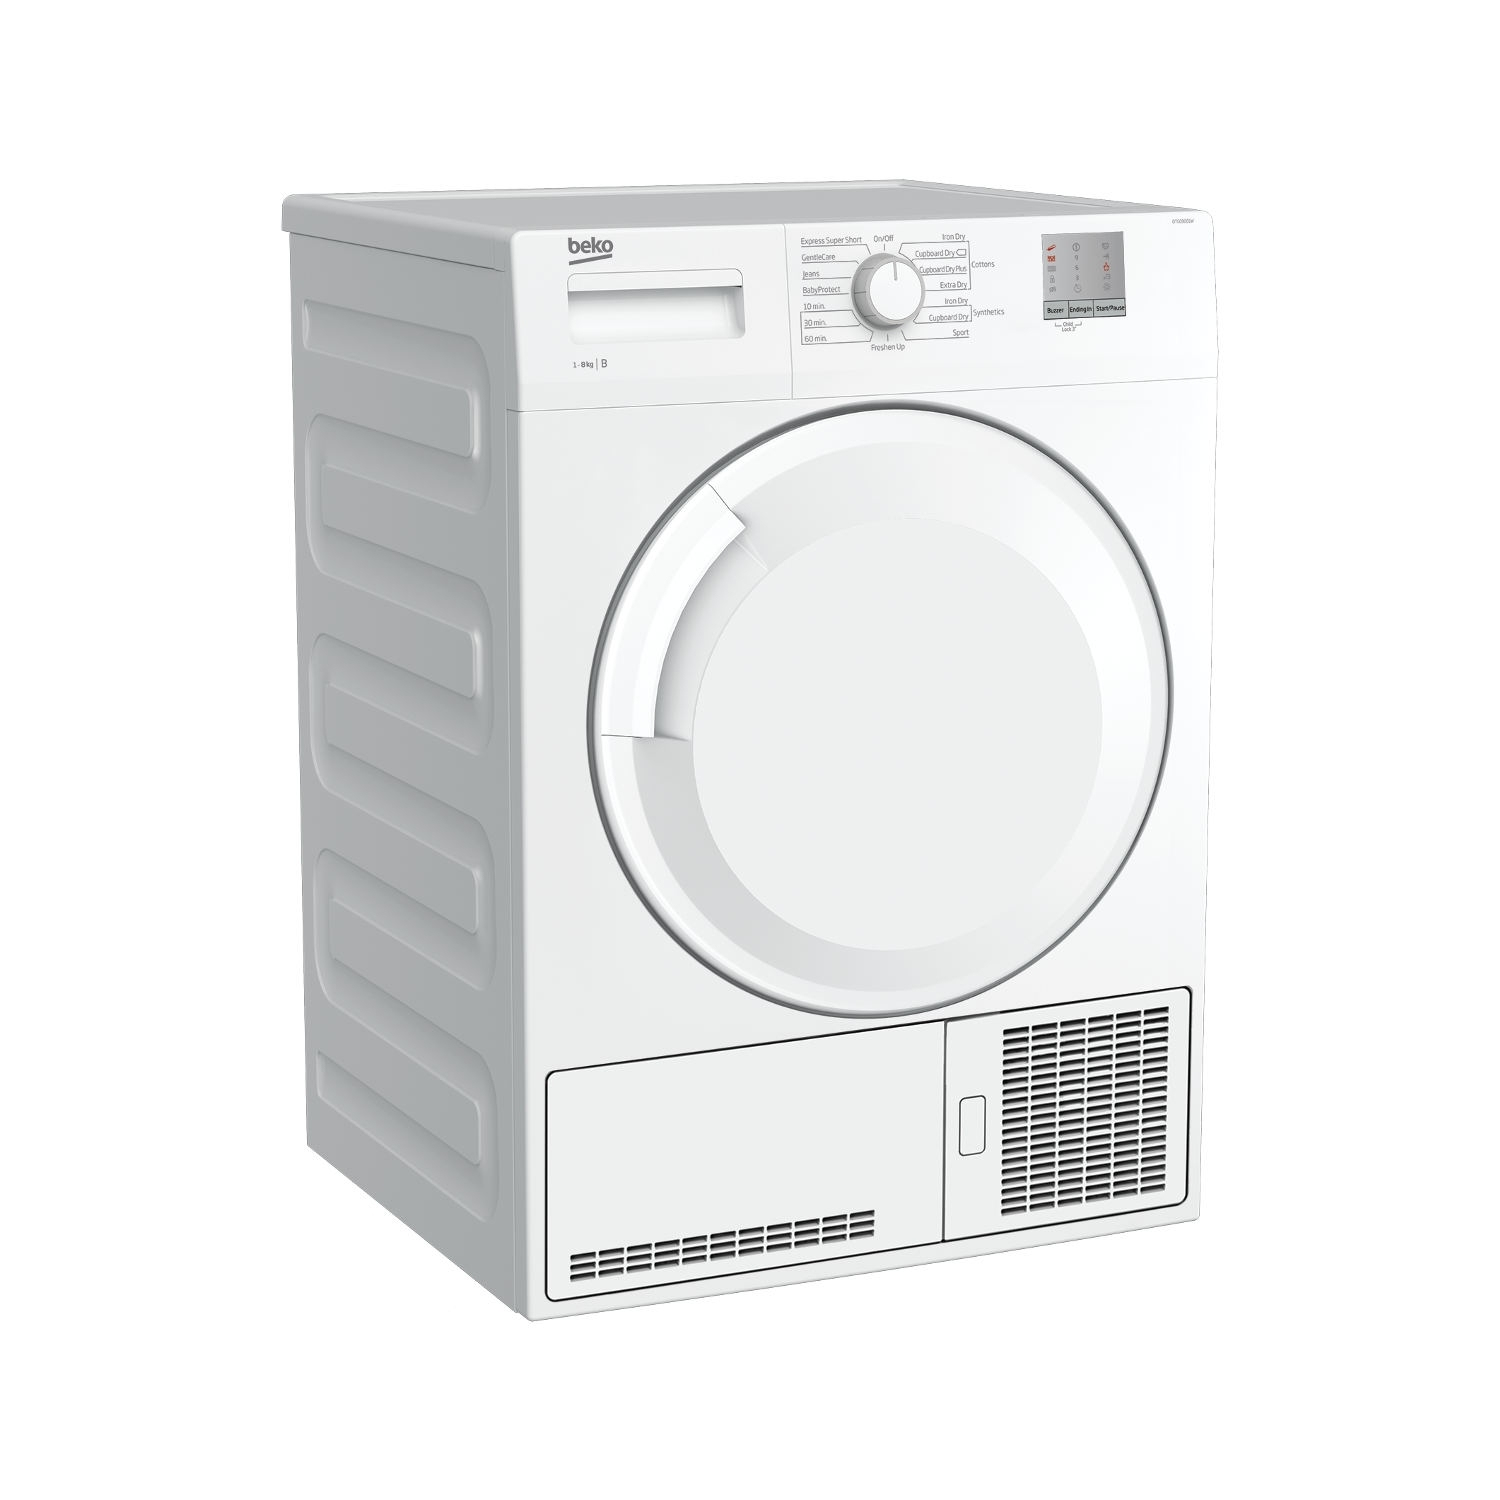 Beko 8kg Condenser Tumble Dryer - White - B Rated - 8